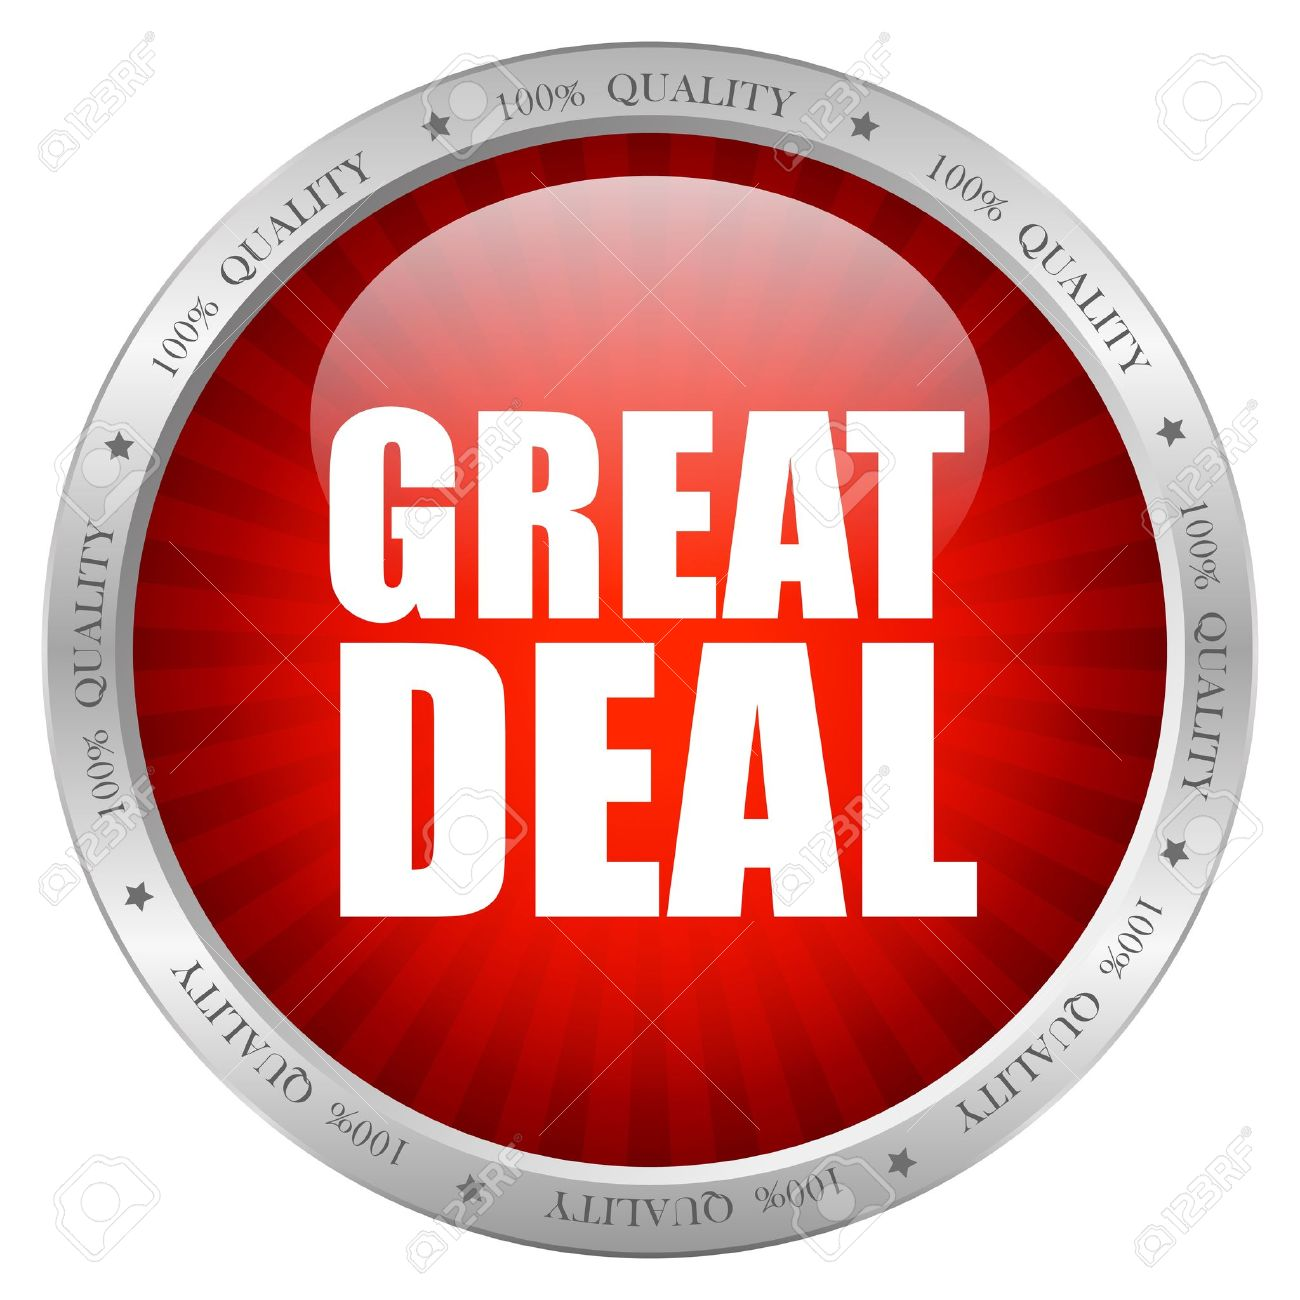 Great deal icon, vector illustration Stock Vector - 15559570